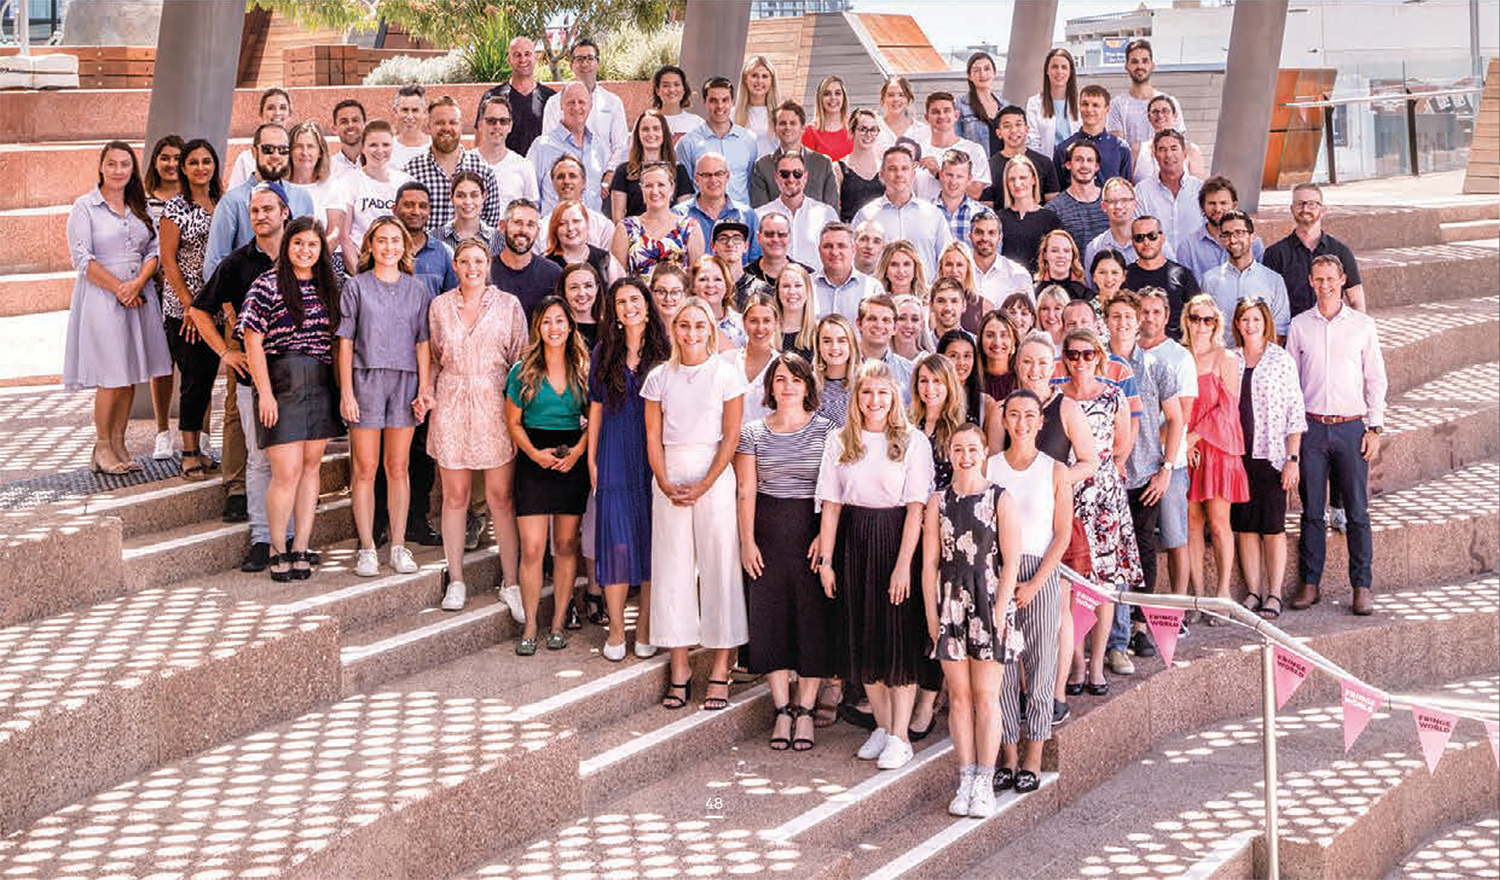 2019 CAMPAIGN BRIEF AWARDS: THE BRAND AGENCY MAKES IT THREE IN A ROW AS AGENCY OF THE YEAR; WATER CORPORATION NAMED ADVERTISER OF THE YEAR; RARE'S CALLUM MACKENZIE AD PERSON OF THE YEAR